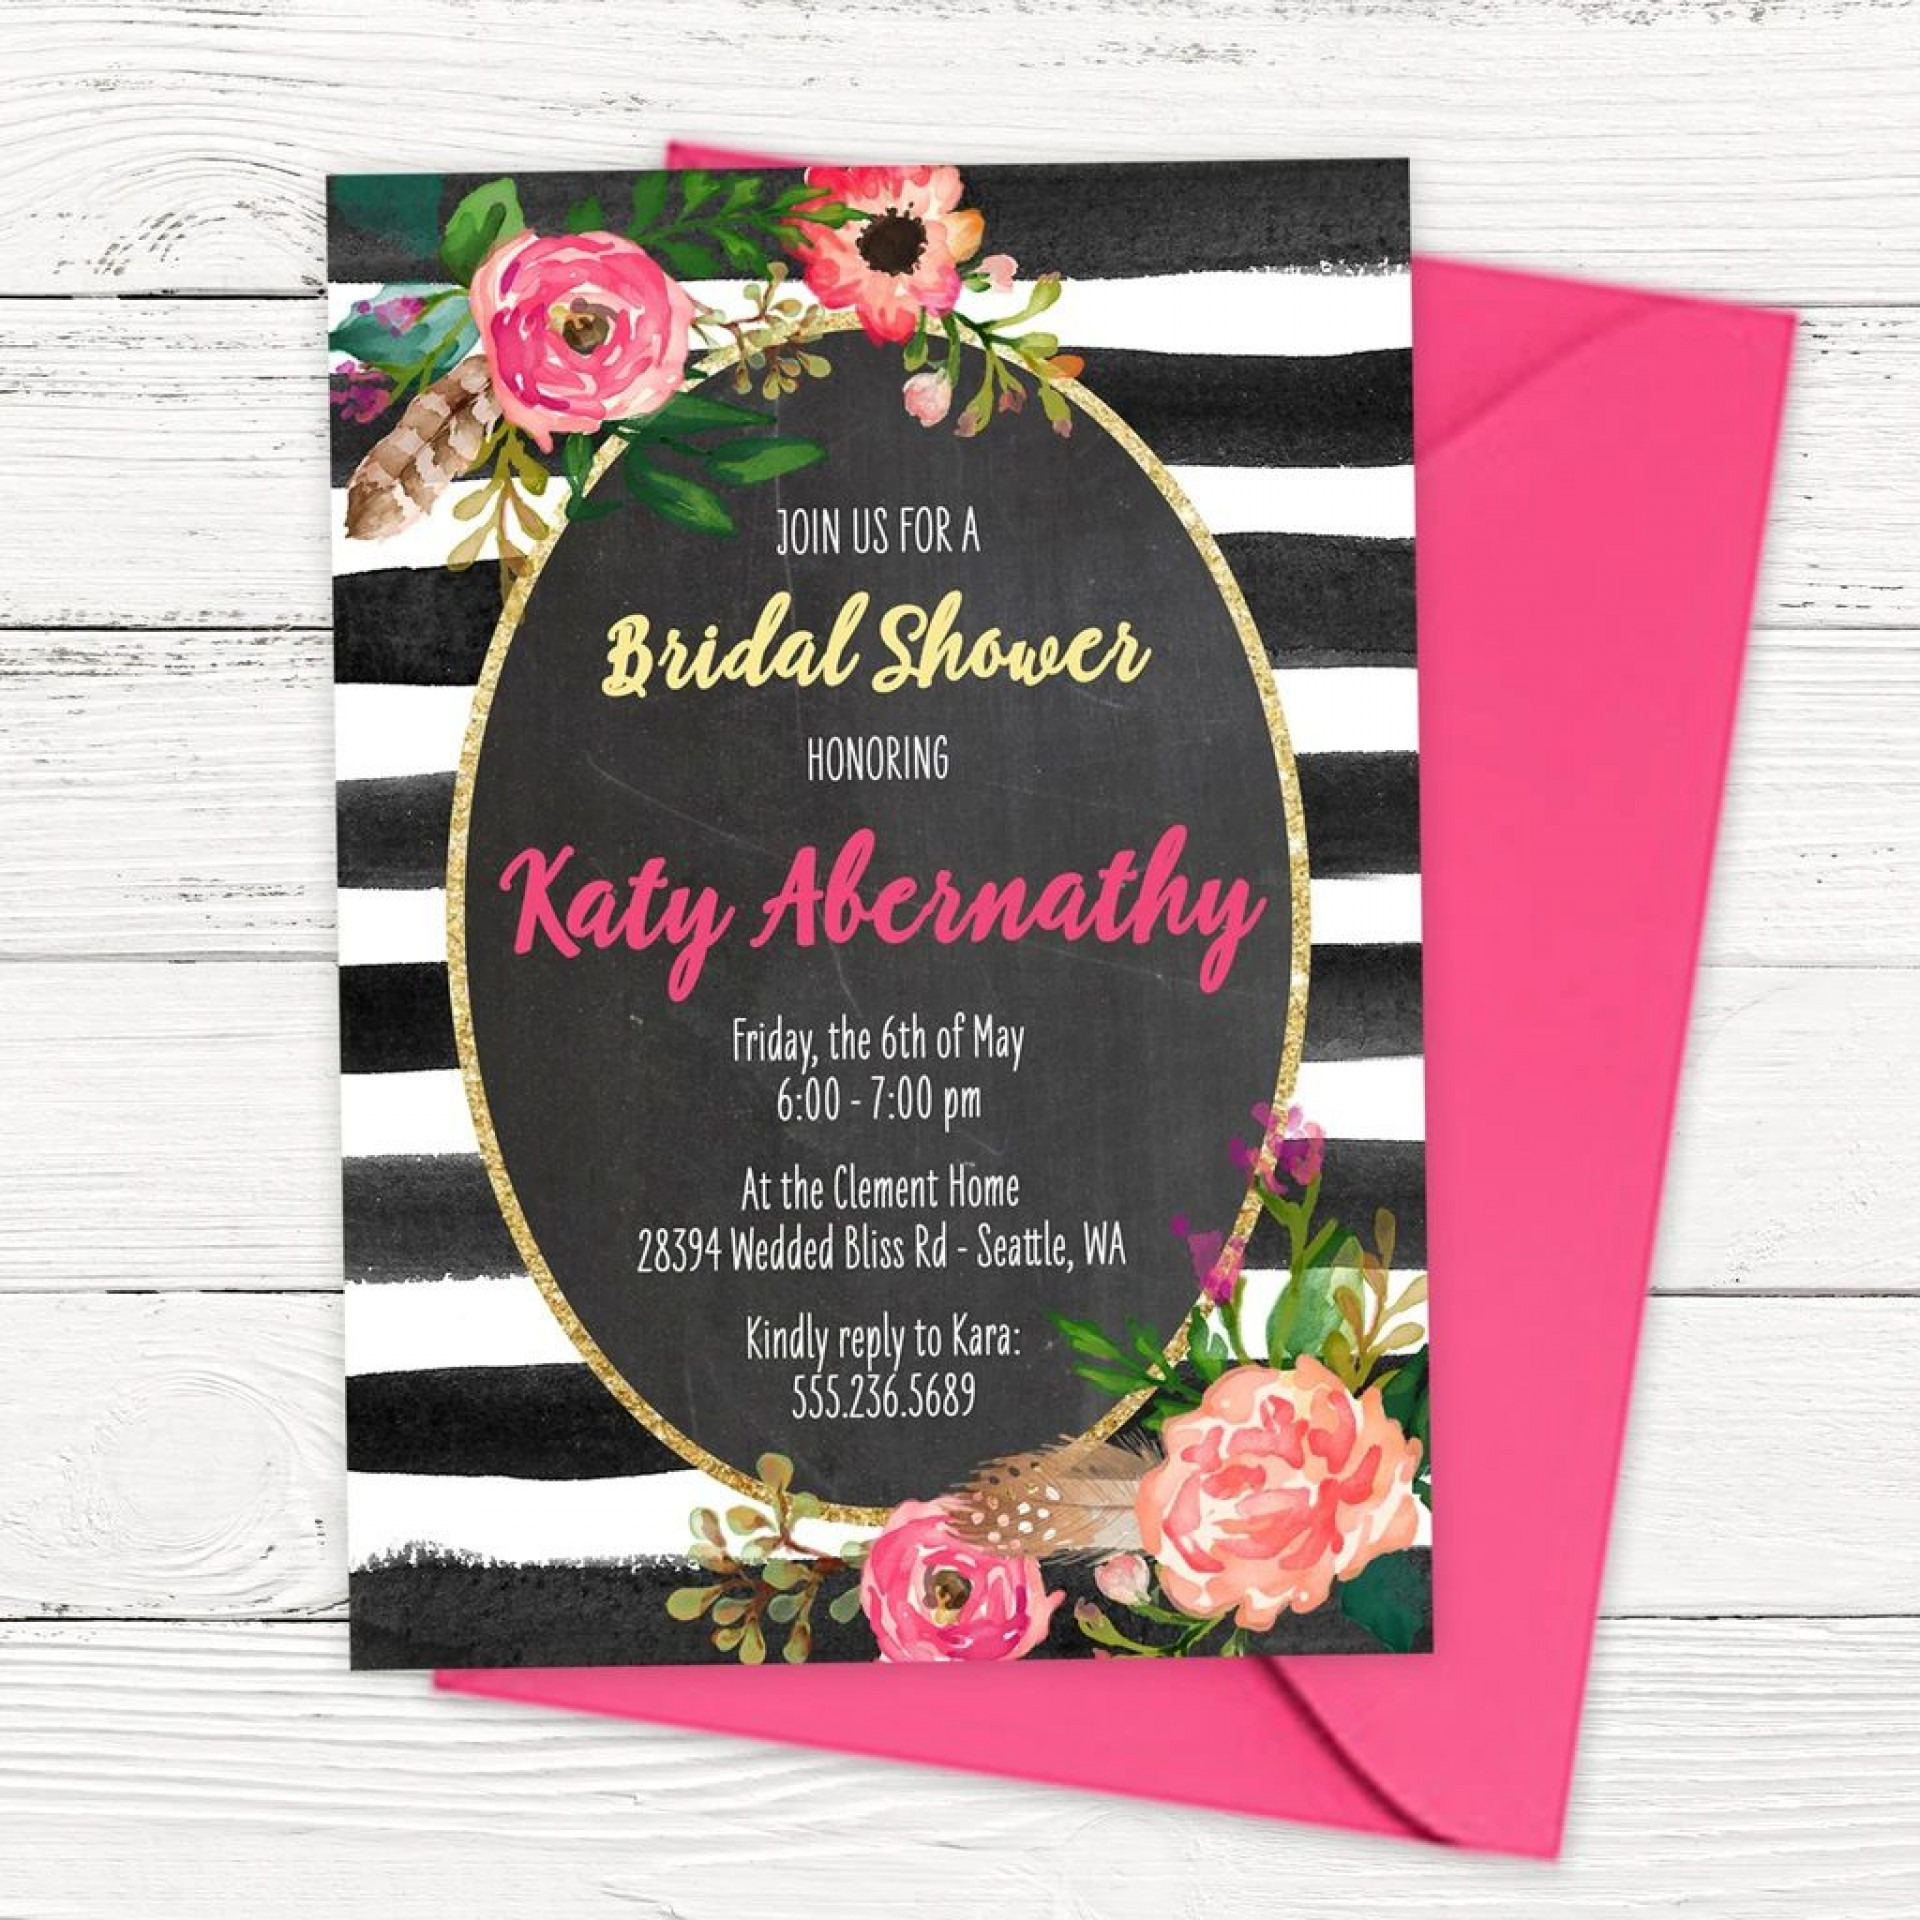 009 Wonderful Free Bridal Shower Invite Template Picture  Templates Invitation To Print Online Wedding For Microsoft Word1920